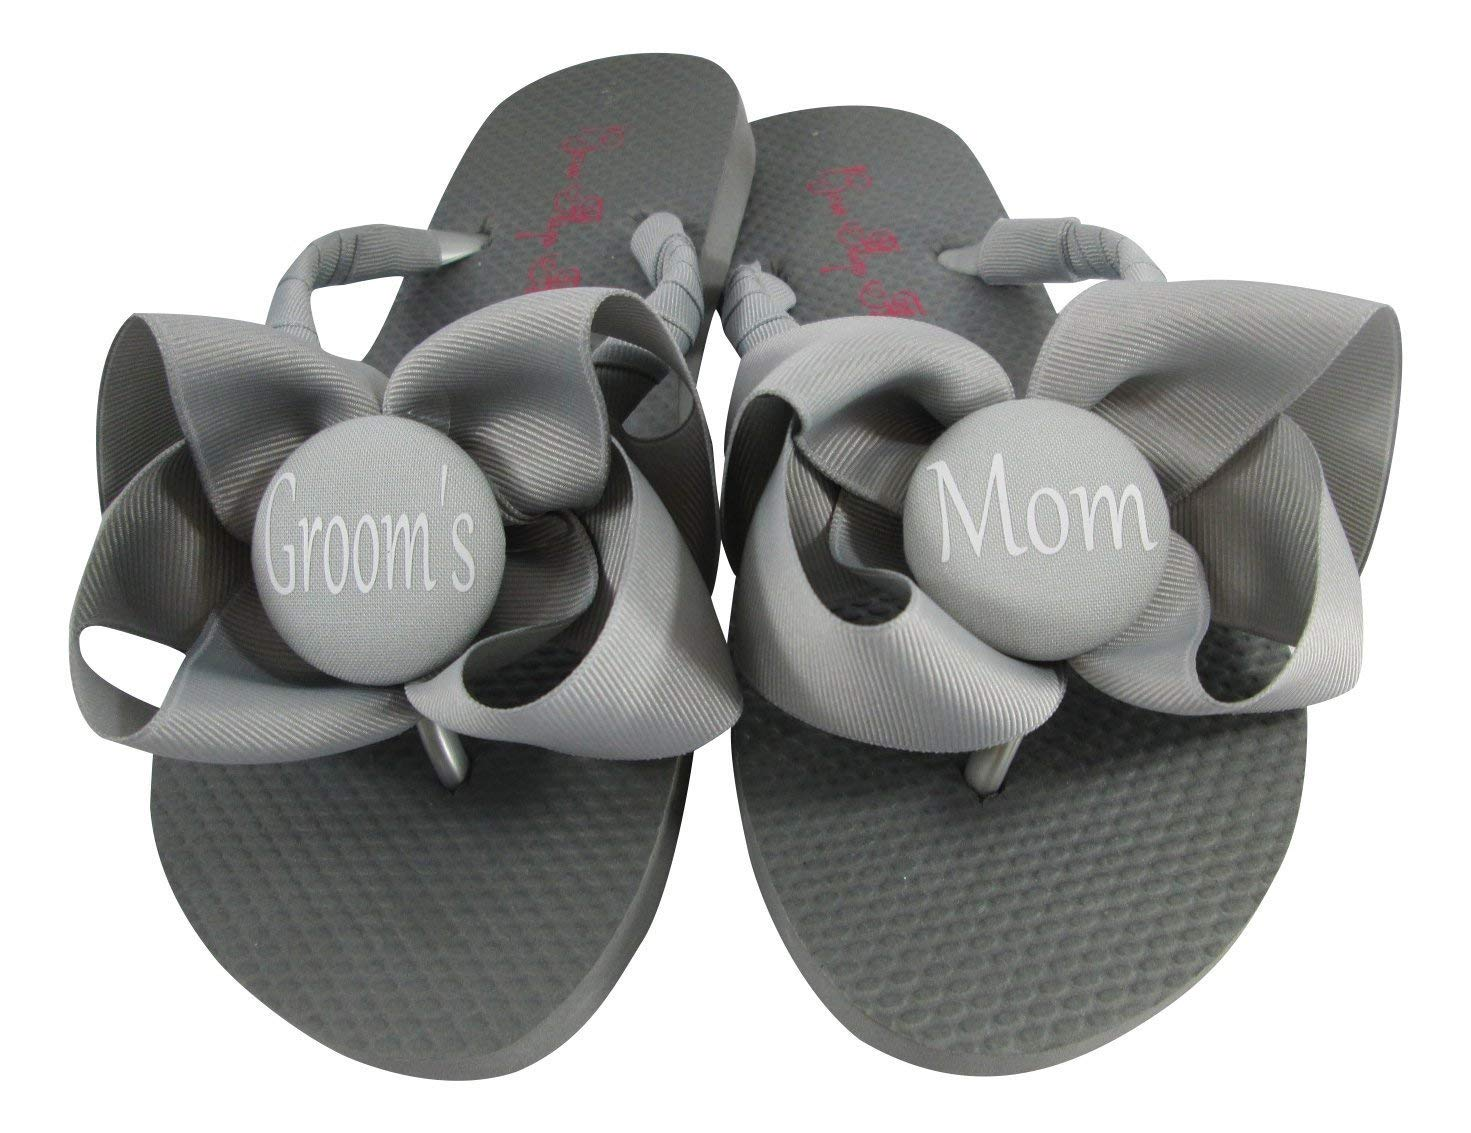 dbf4c6f679e00 Get Quotations · Bride s Mom on Buttons and Bow Flip Flops for Bridal Party